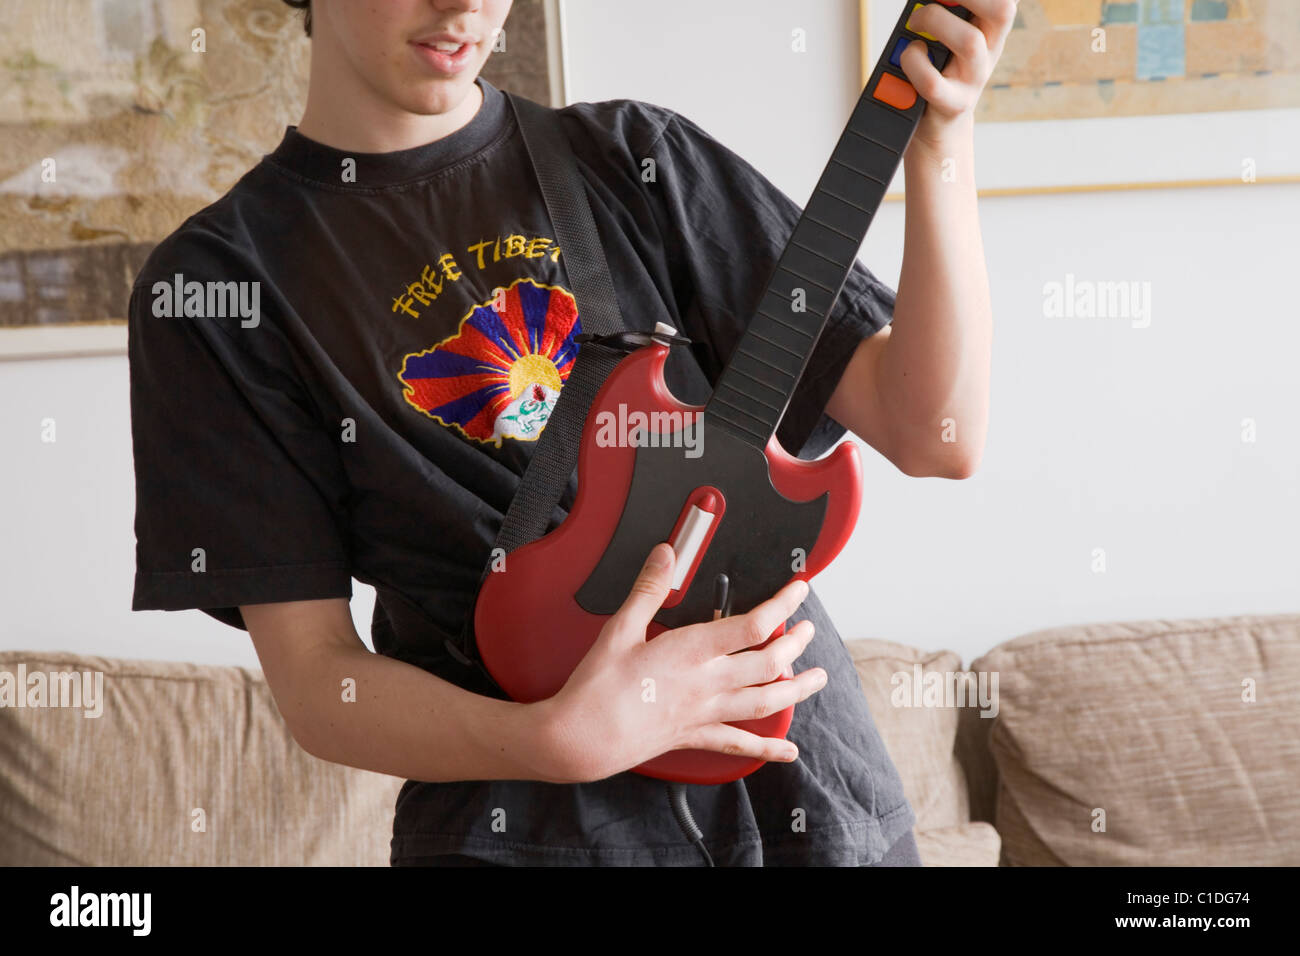 A teenage boy playing the Playstation game Guitar Hero wearing a Free Tibet-T-shirt. - Stock Image